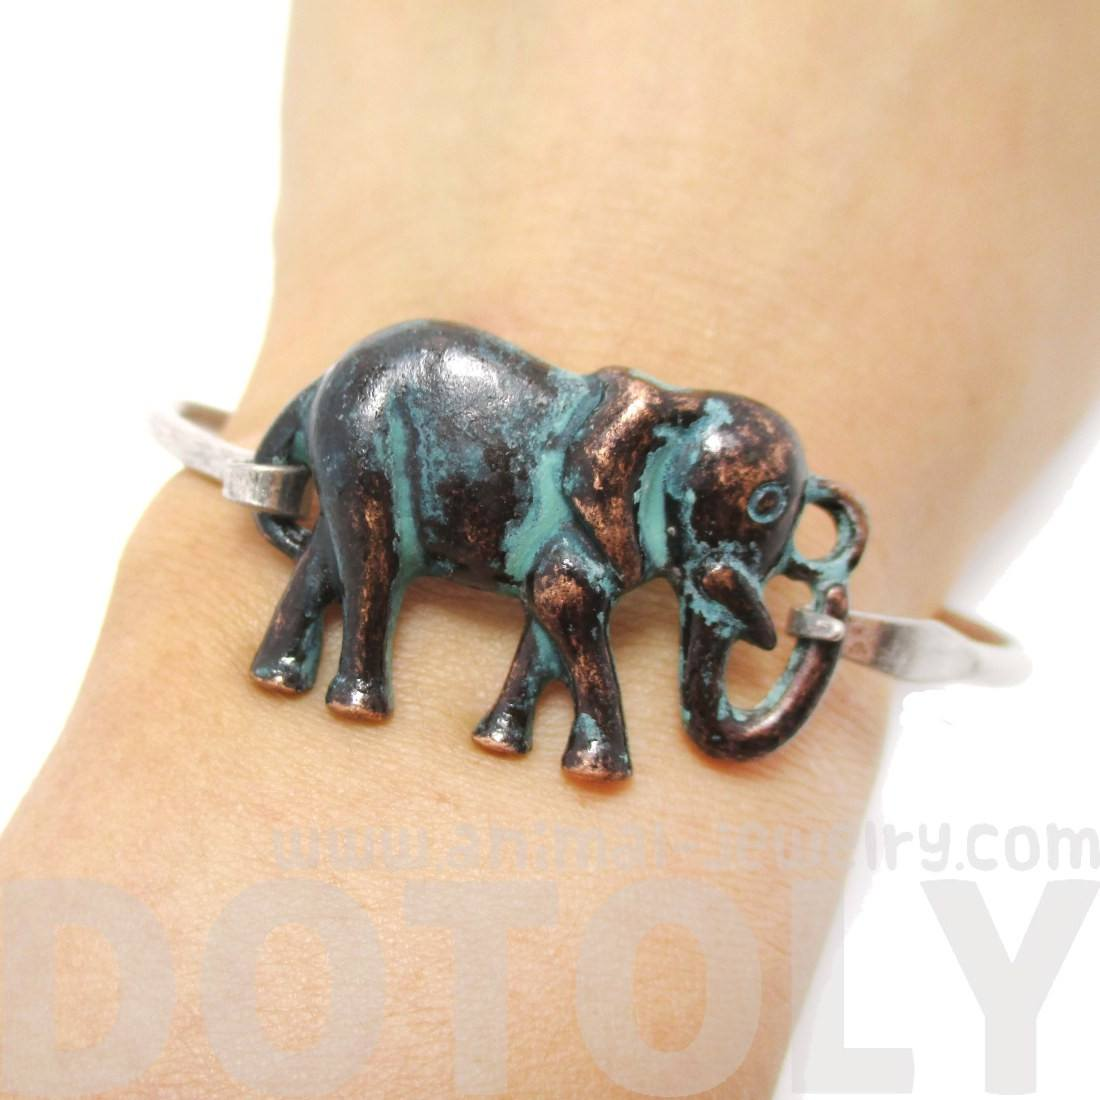 Classic Silver Bangle Bracelet Cuff with Antique Elephant Pendant | Animal Jewelry